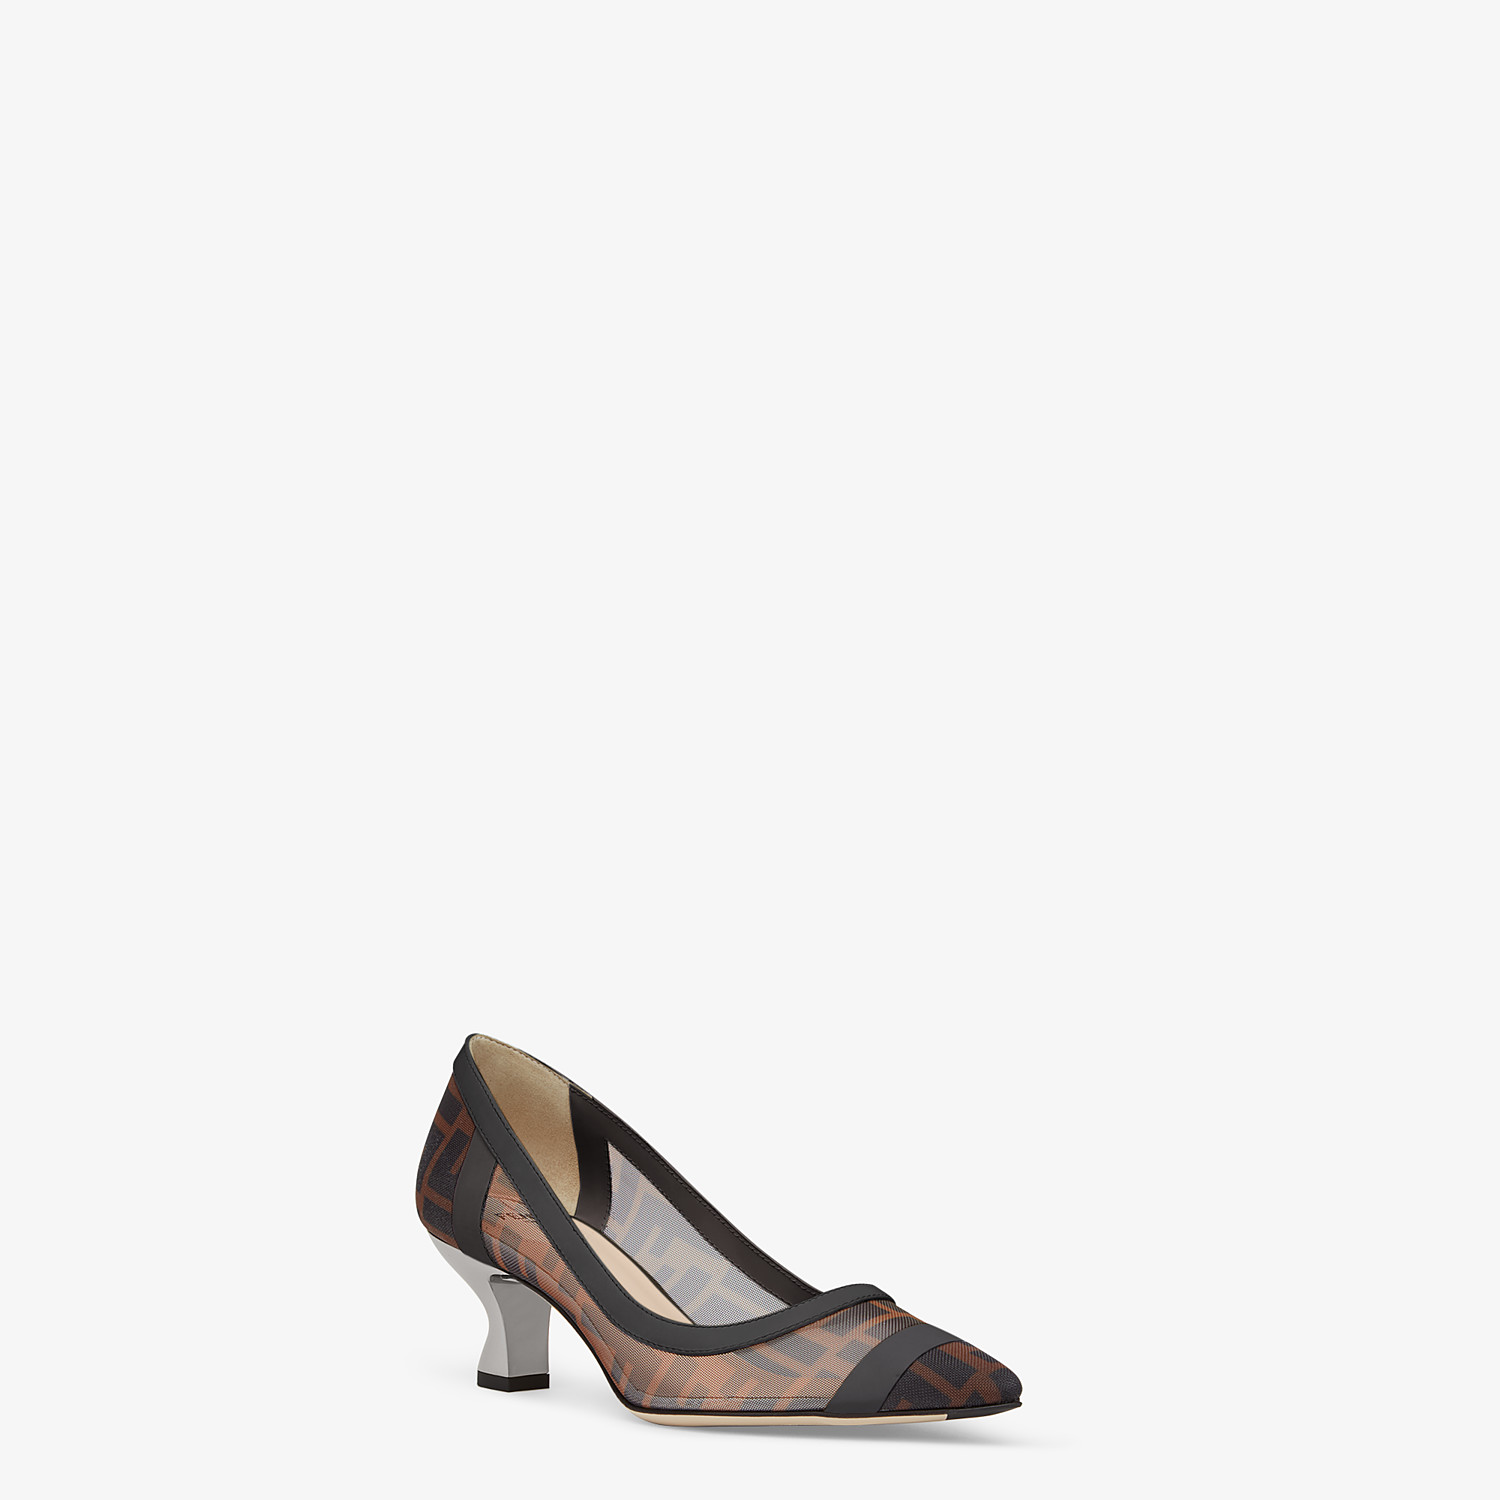 FENDI SLINGBACKS - Mesh and black leather pumps - view 2 detail